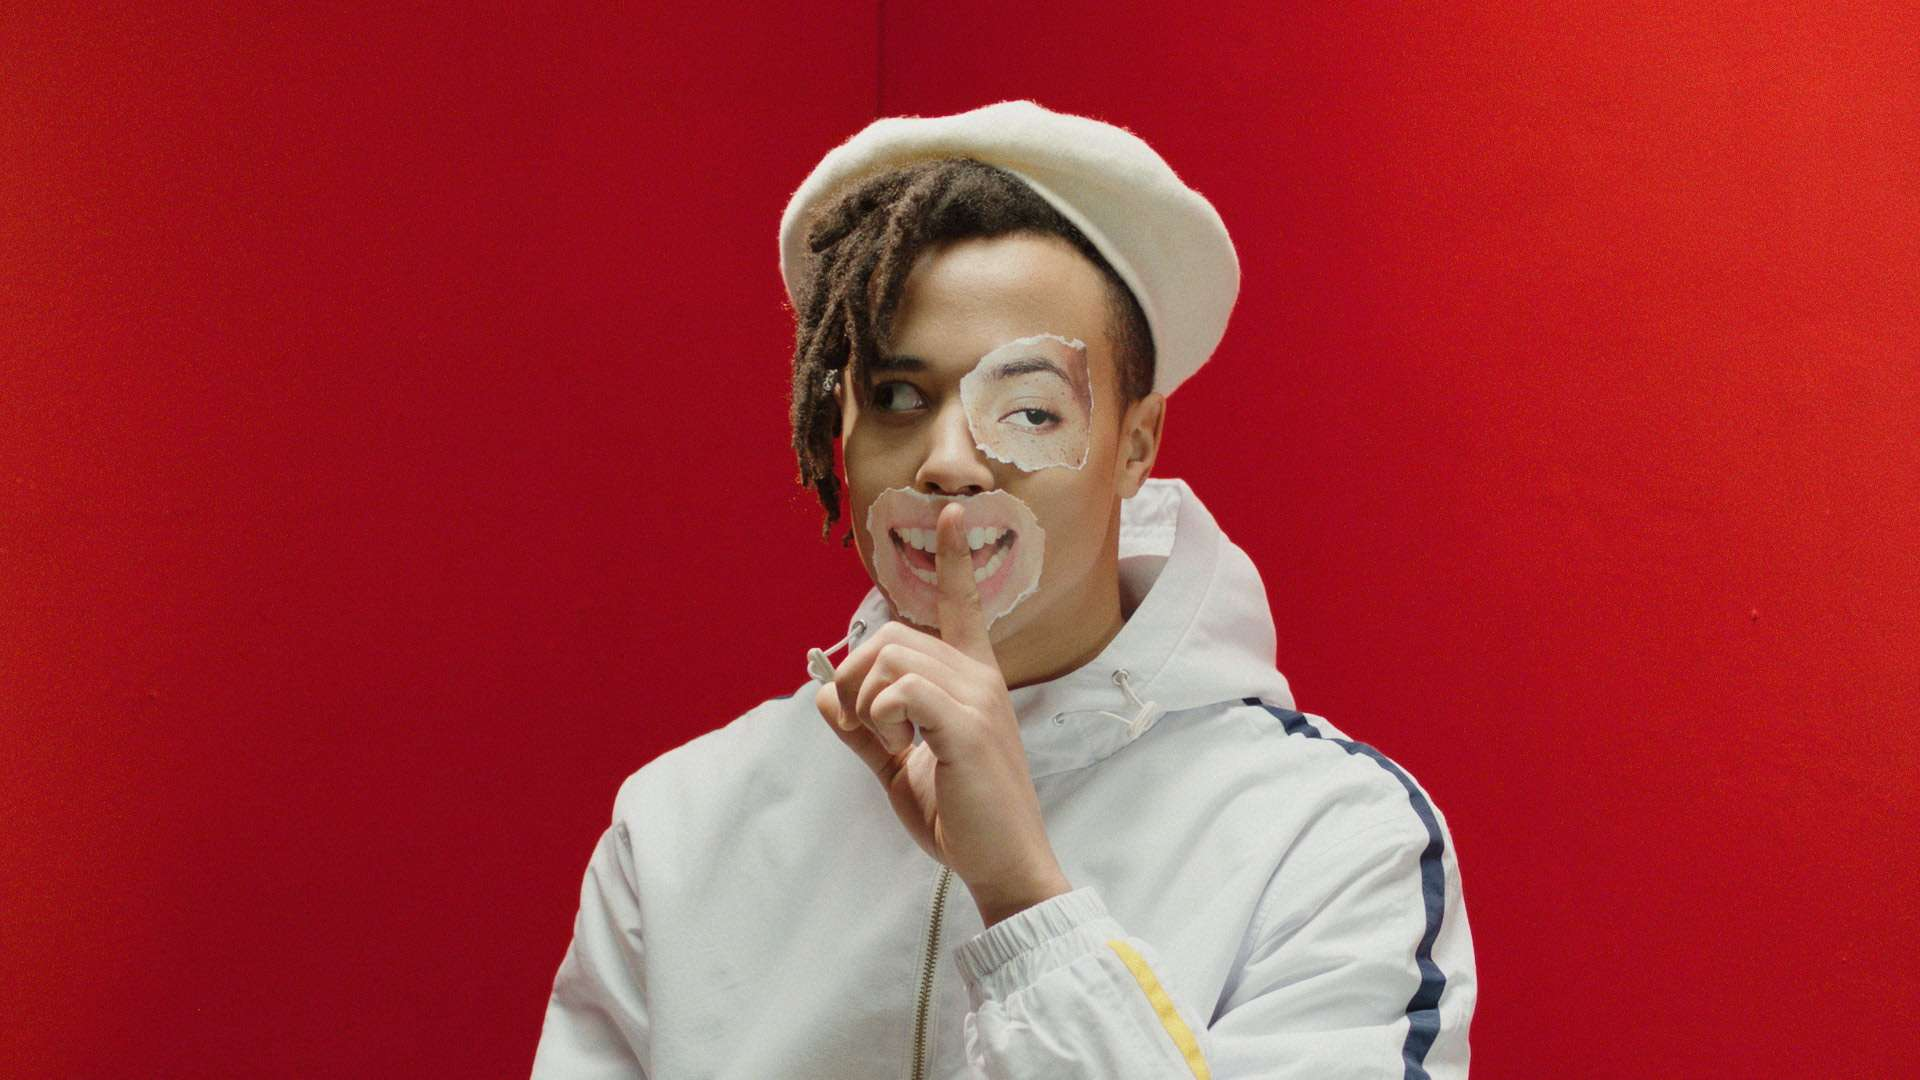 rapper Zach Zoya on red background with pieces of paper on his face for music video Who Dat filmed by Les Gamins